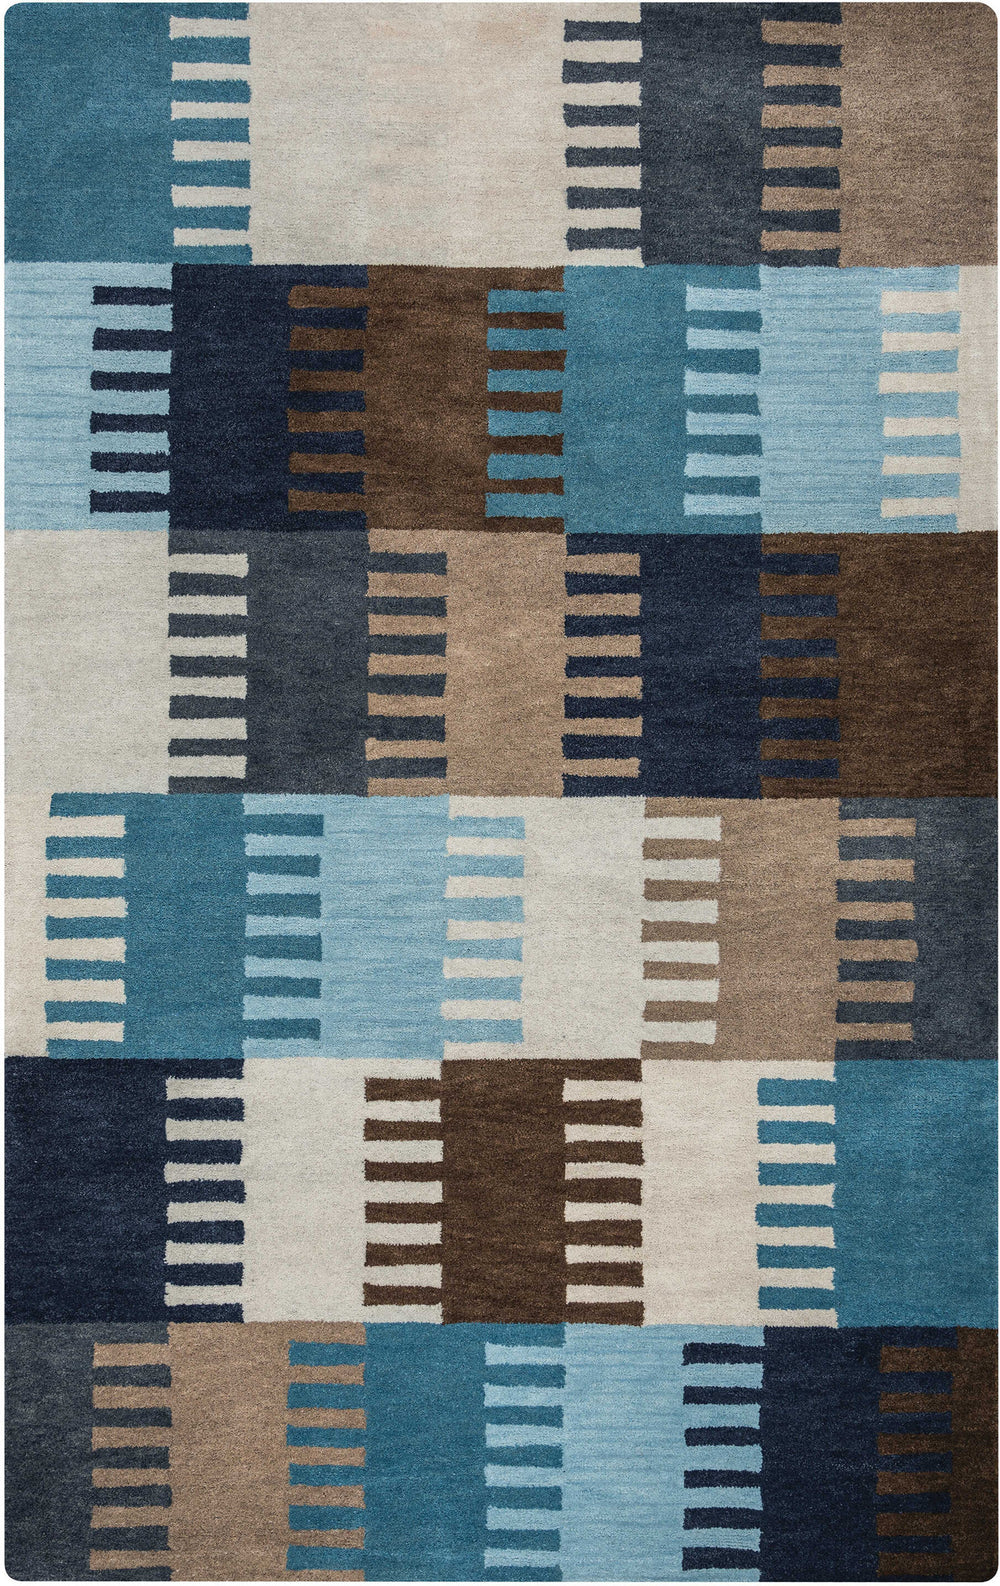 Rizzy Marianna Fields MF9459 Area Rug